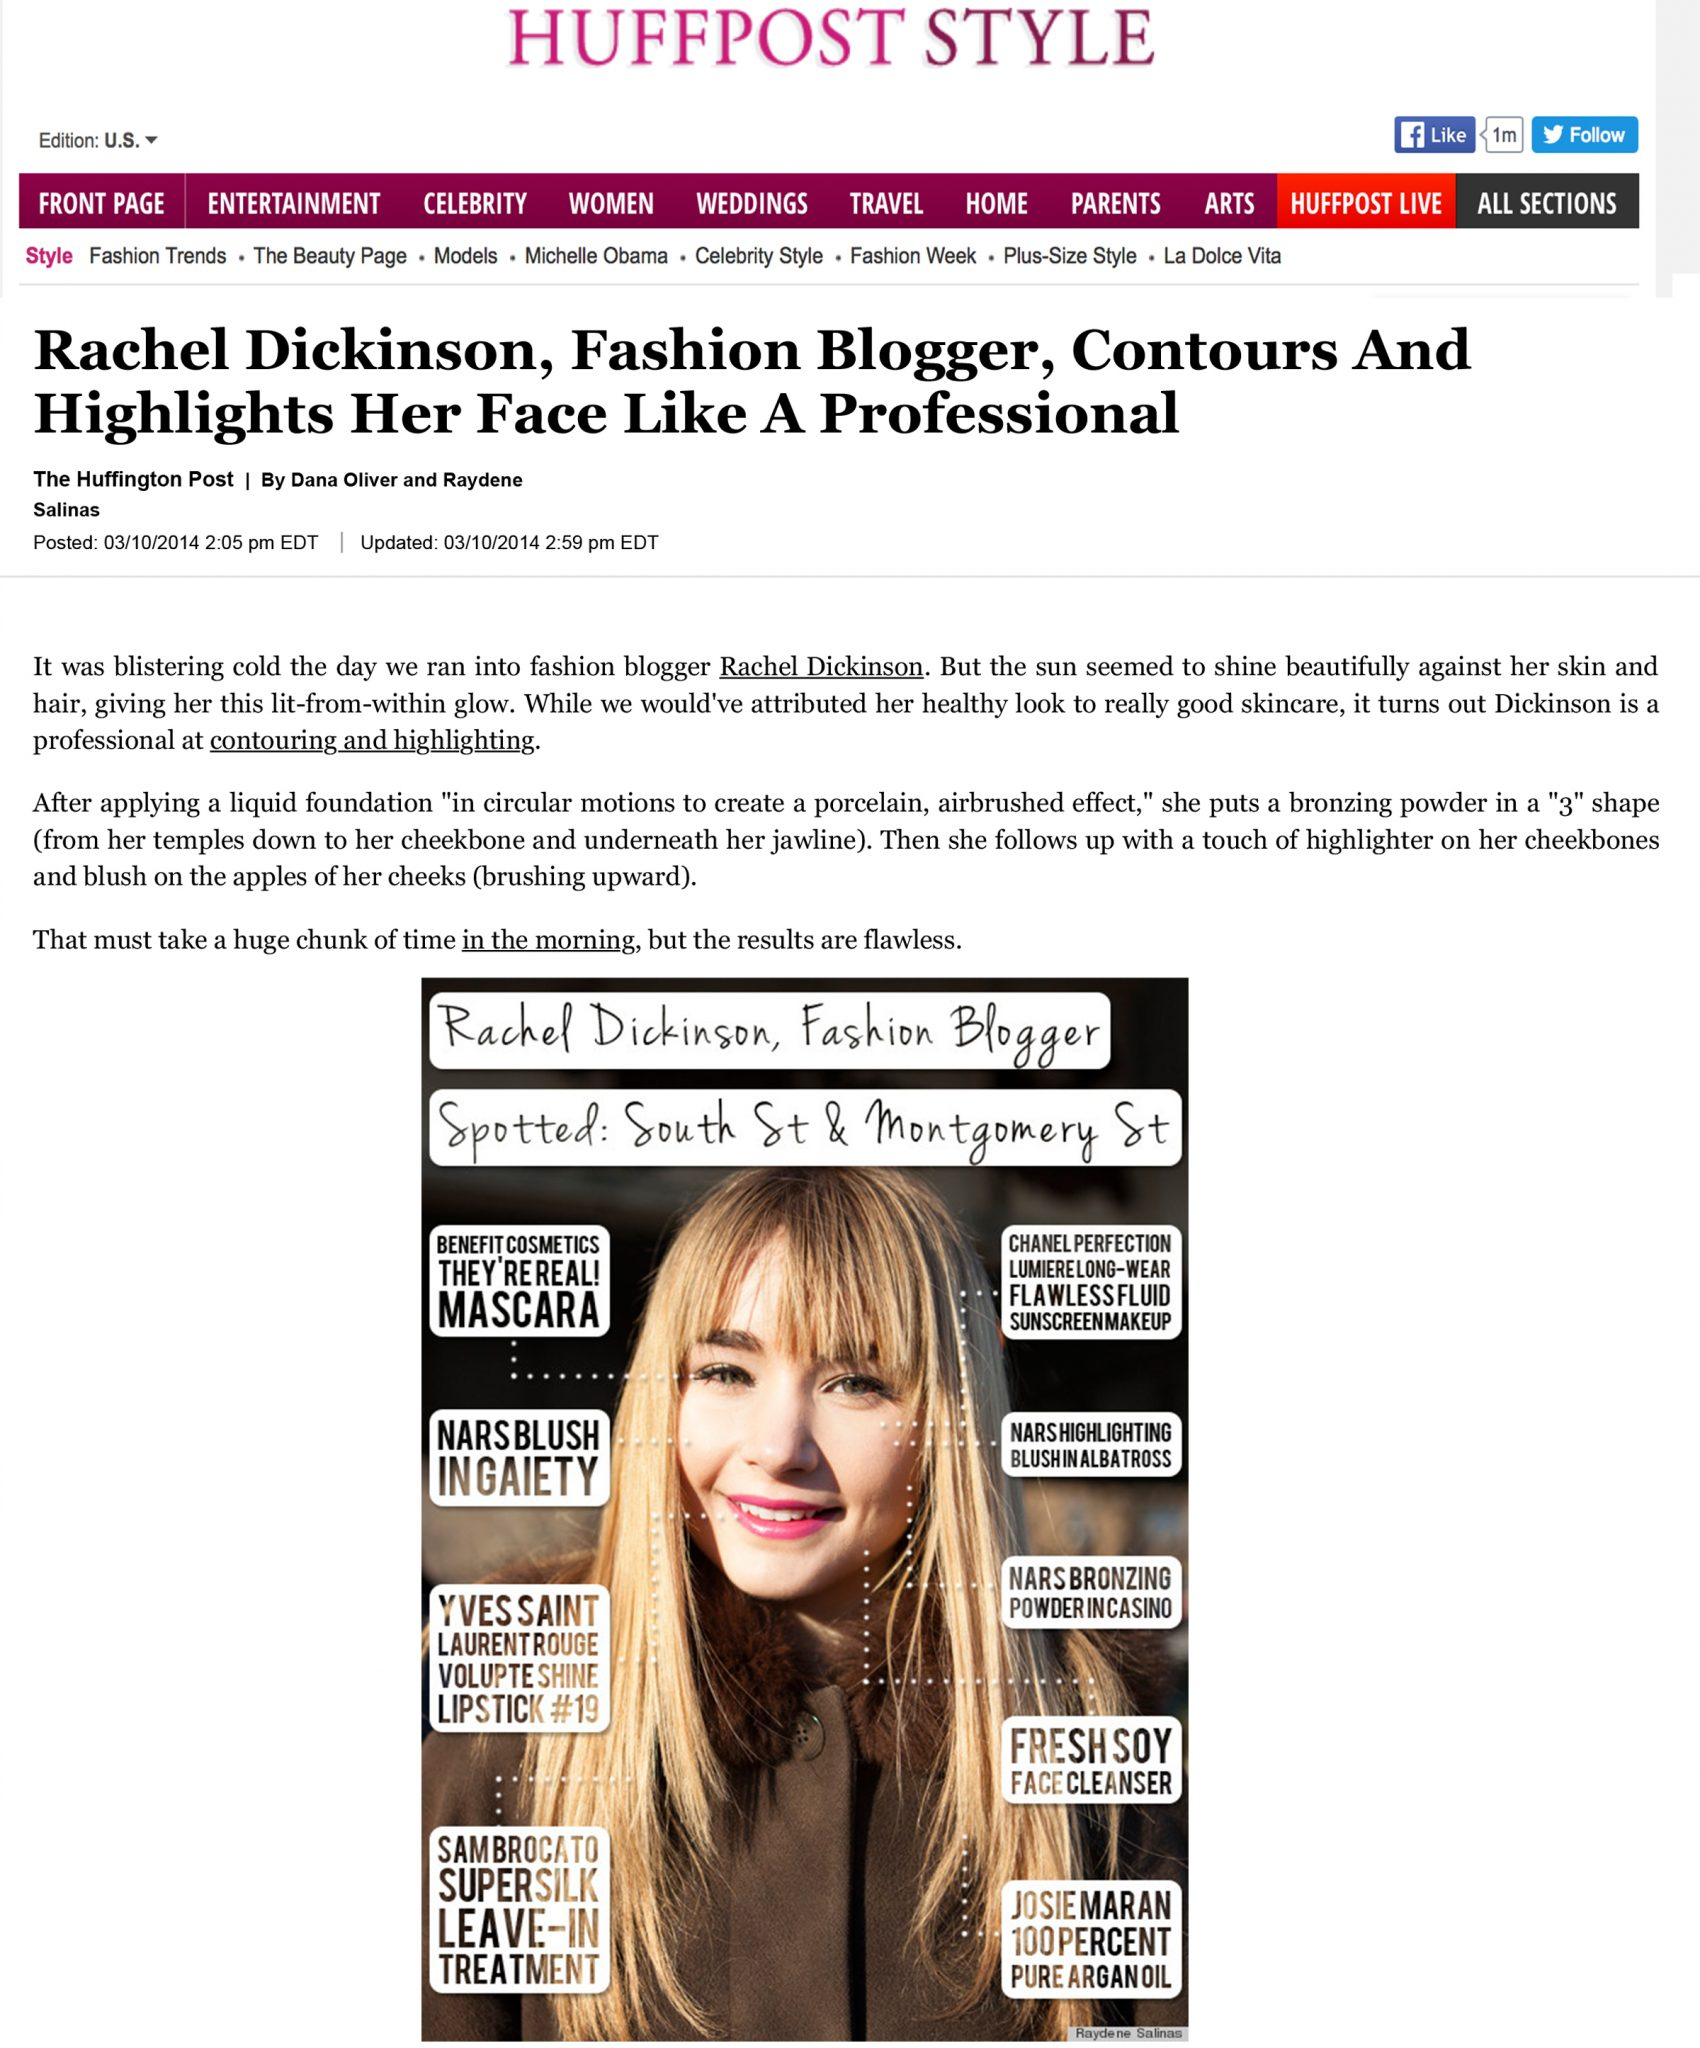 Rachel Dickinson, Fashion Blogger, Contours And Highlights Her F